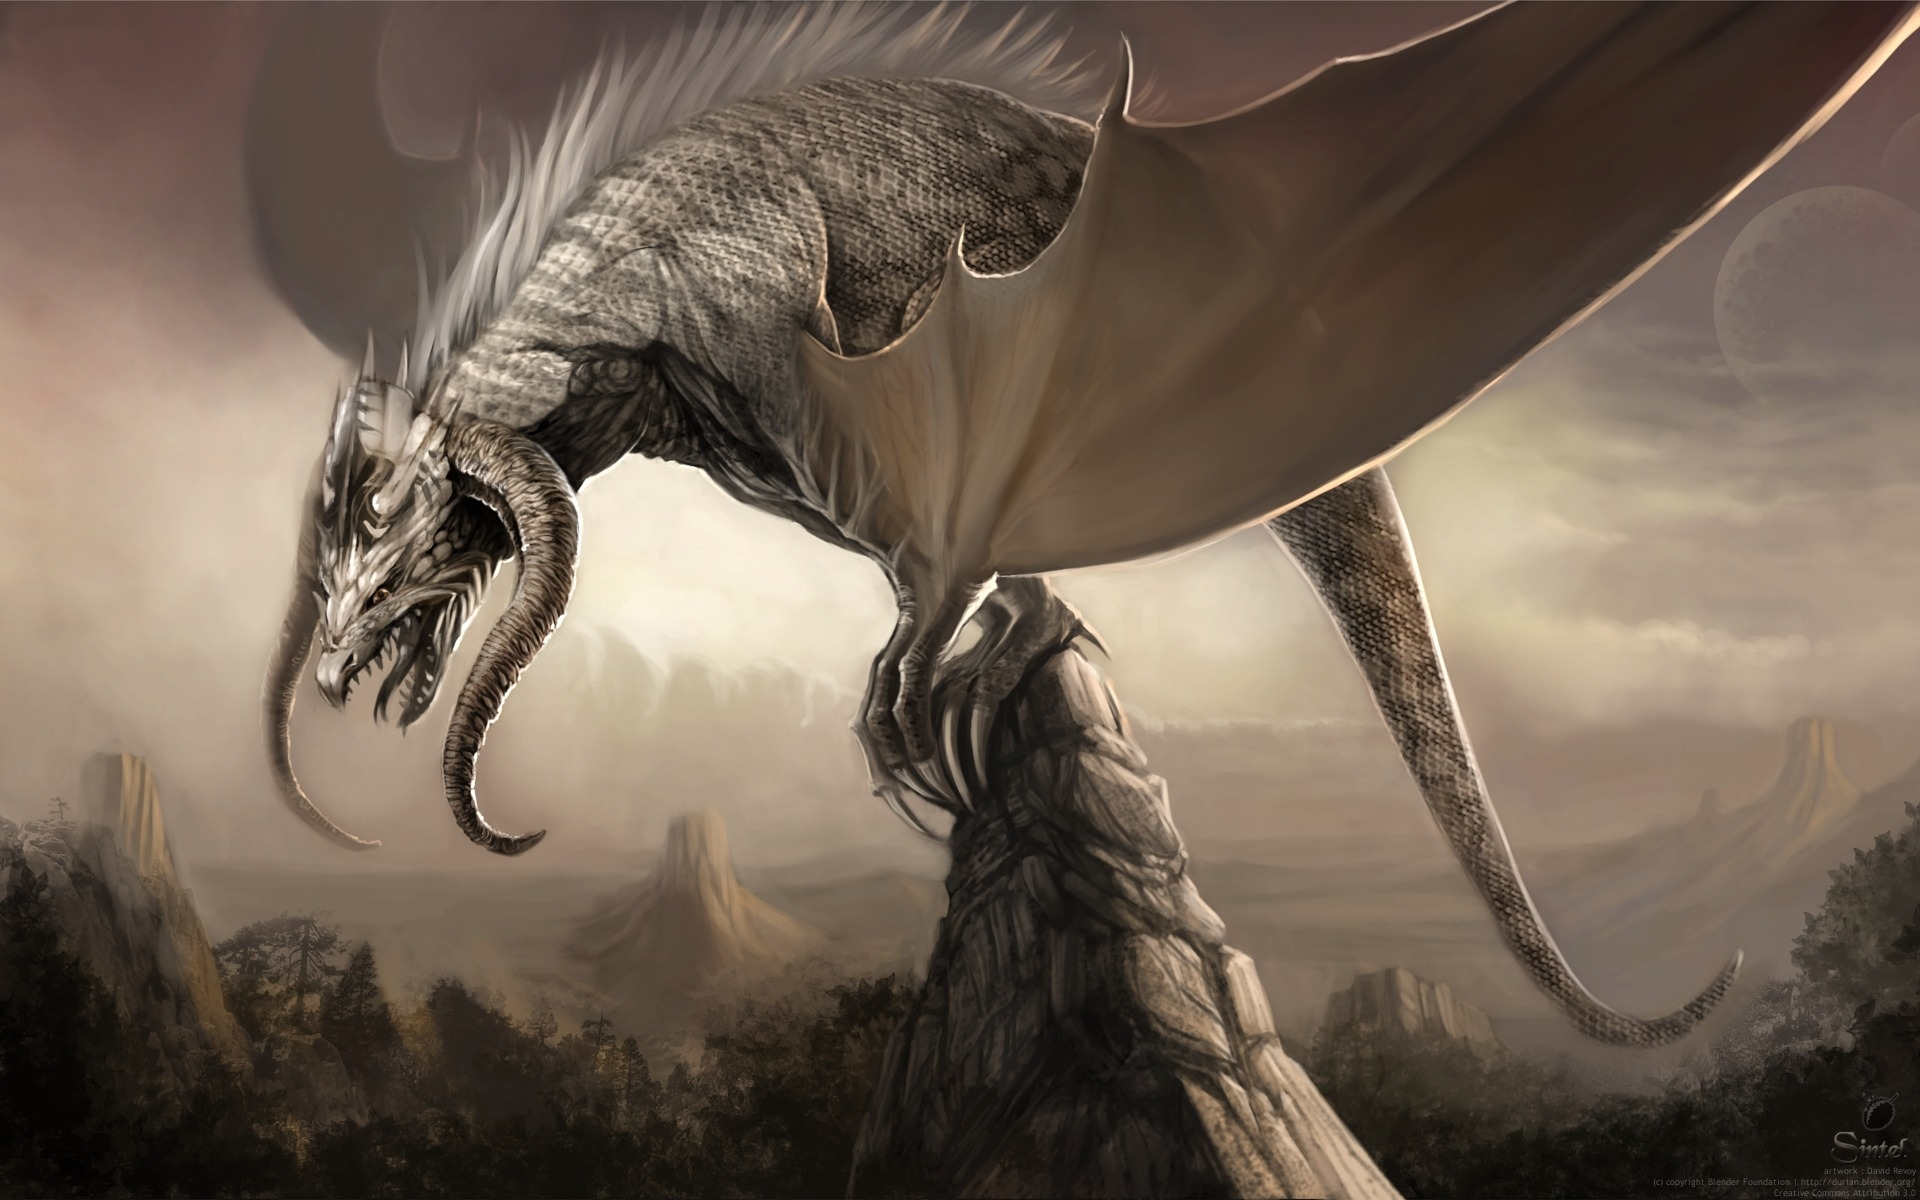 23965 download wallpaper Fantasy, Dragons screensavers and pictures for free